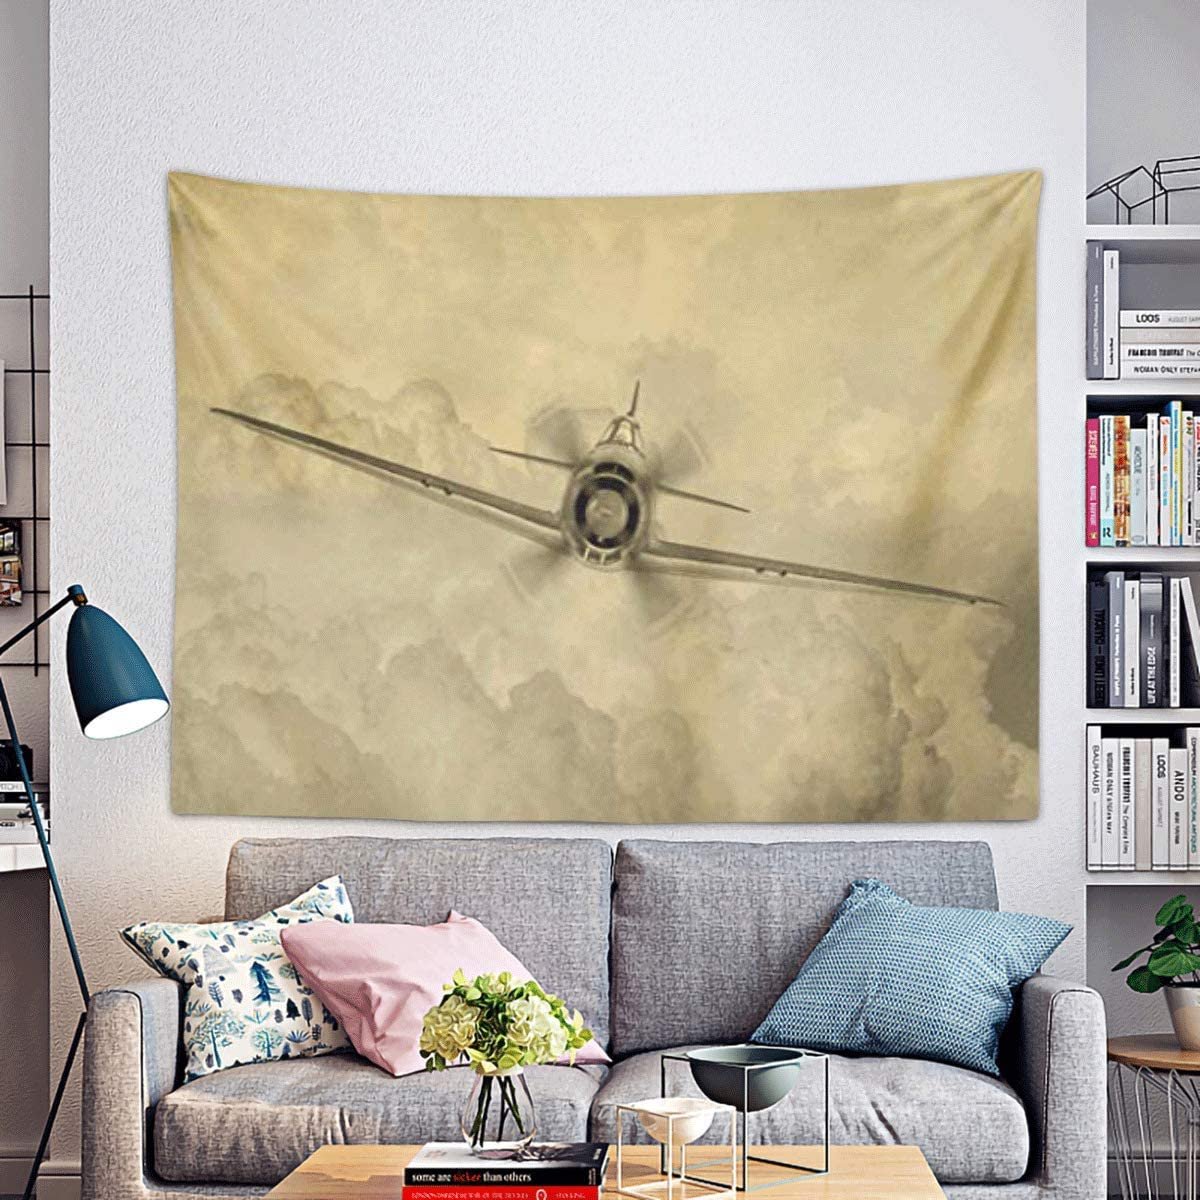 Remain Unique Tapestry Ww2 Vintage of World War Era Fighter Plane Known As George by The Allies Bomber Wall Hang Decor Indoor House Made in Soft